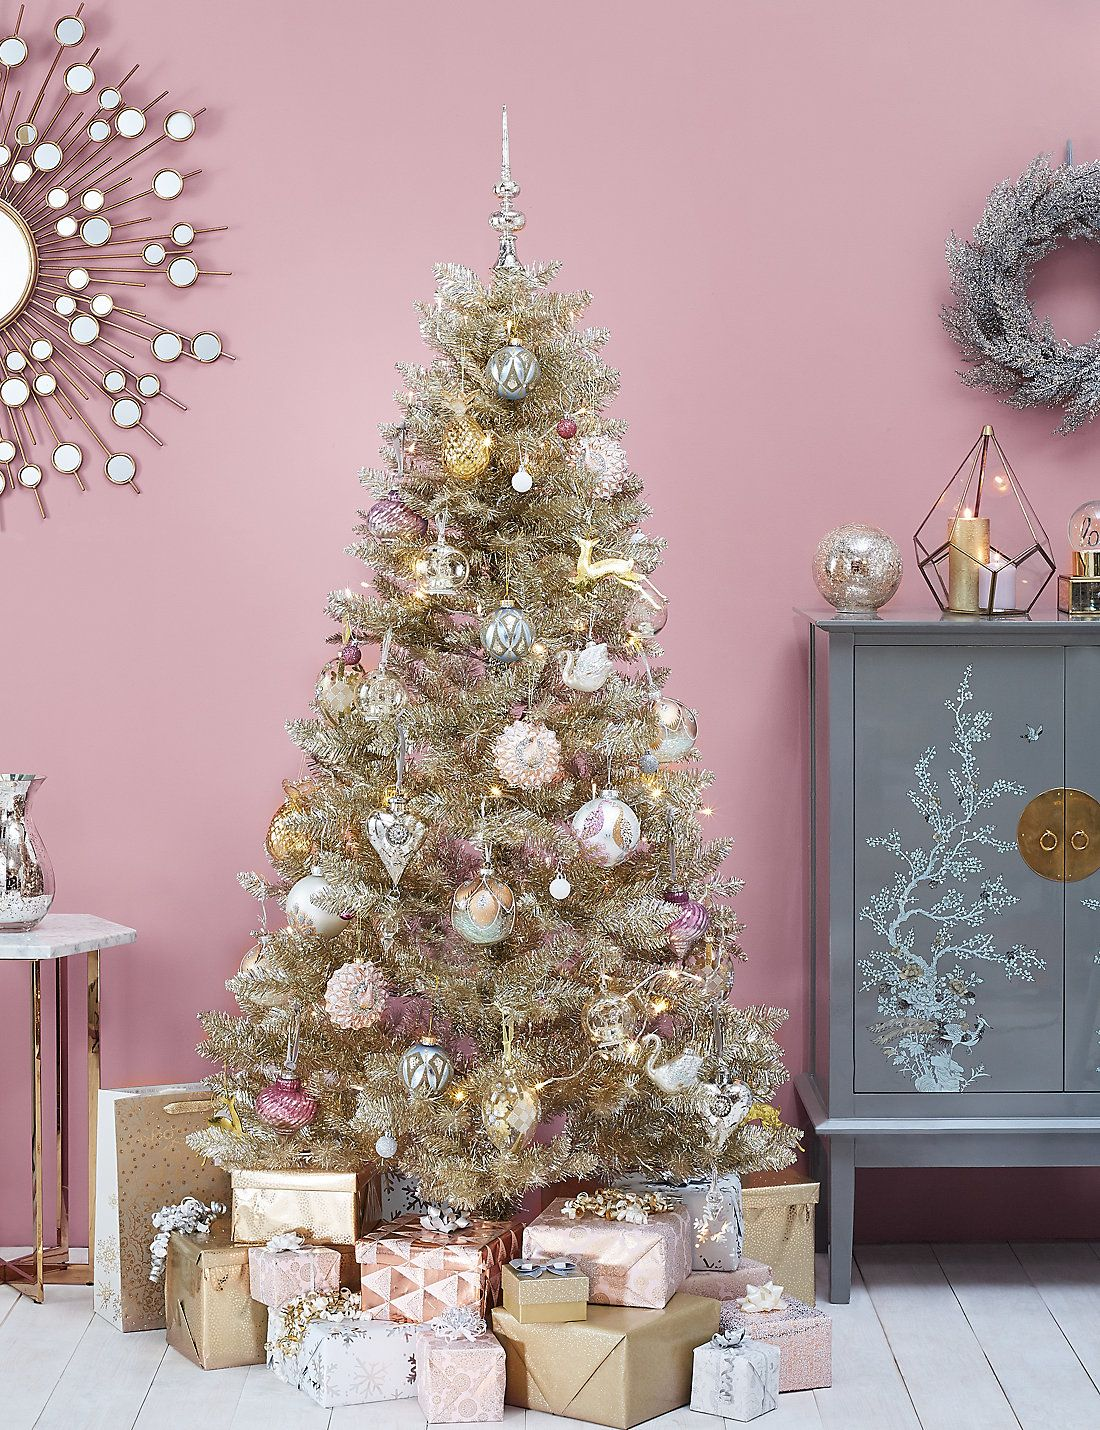 Our Range Of Luxury Christmas Tree Decorations At M S Including A Variety Light Up Baubles And Traditional Toppers